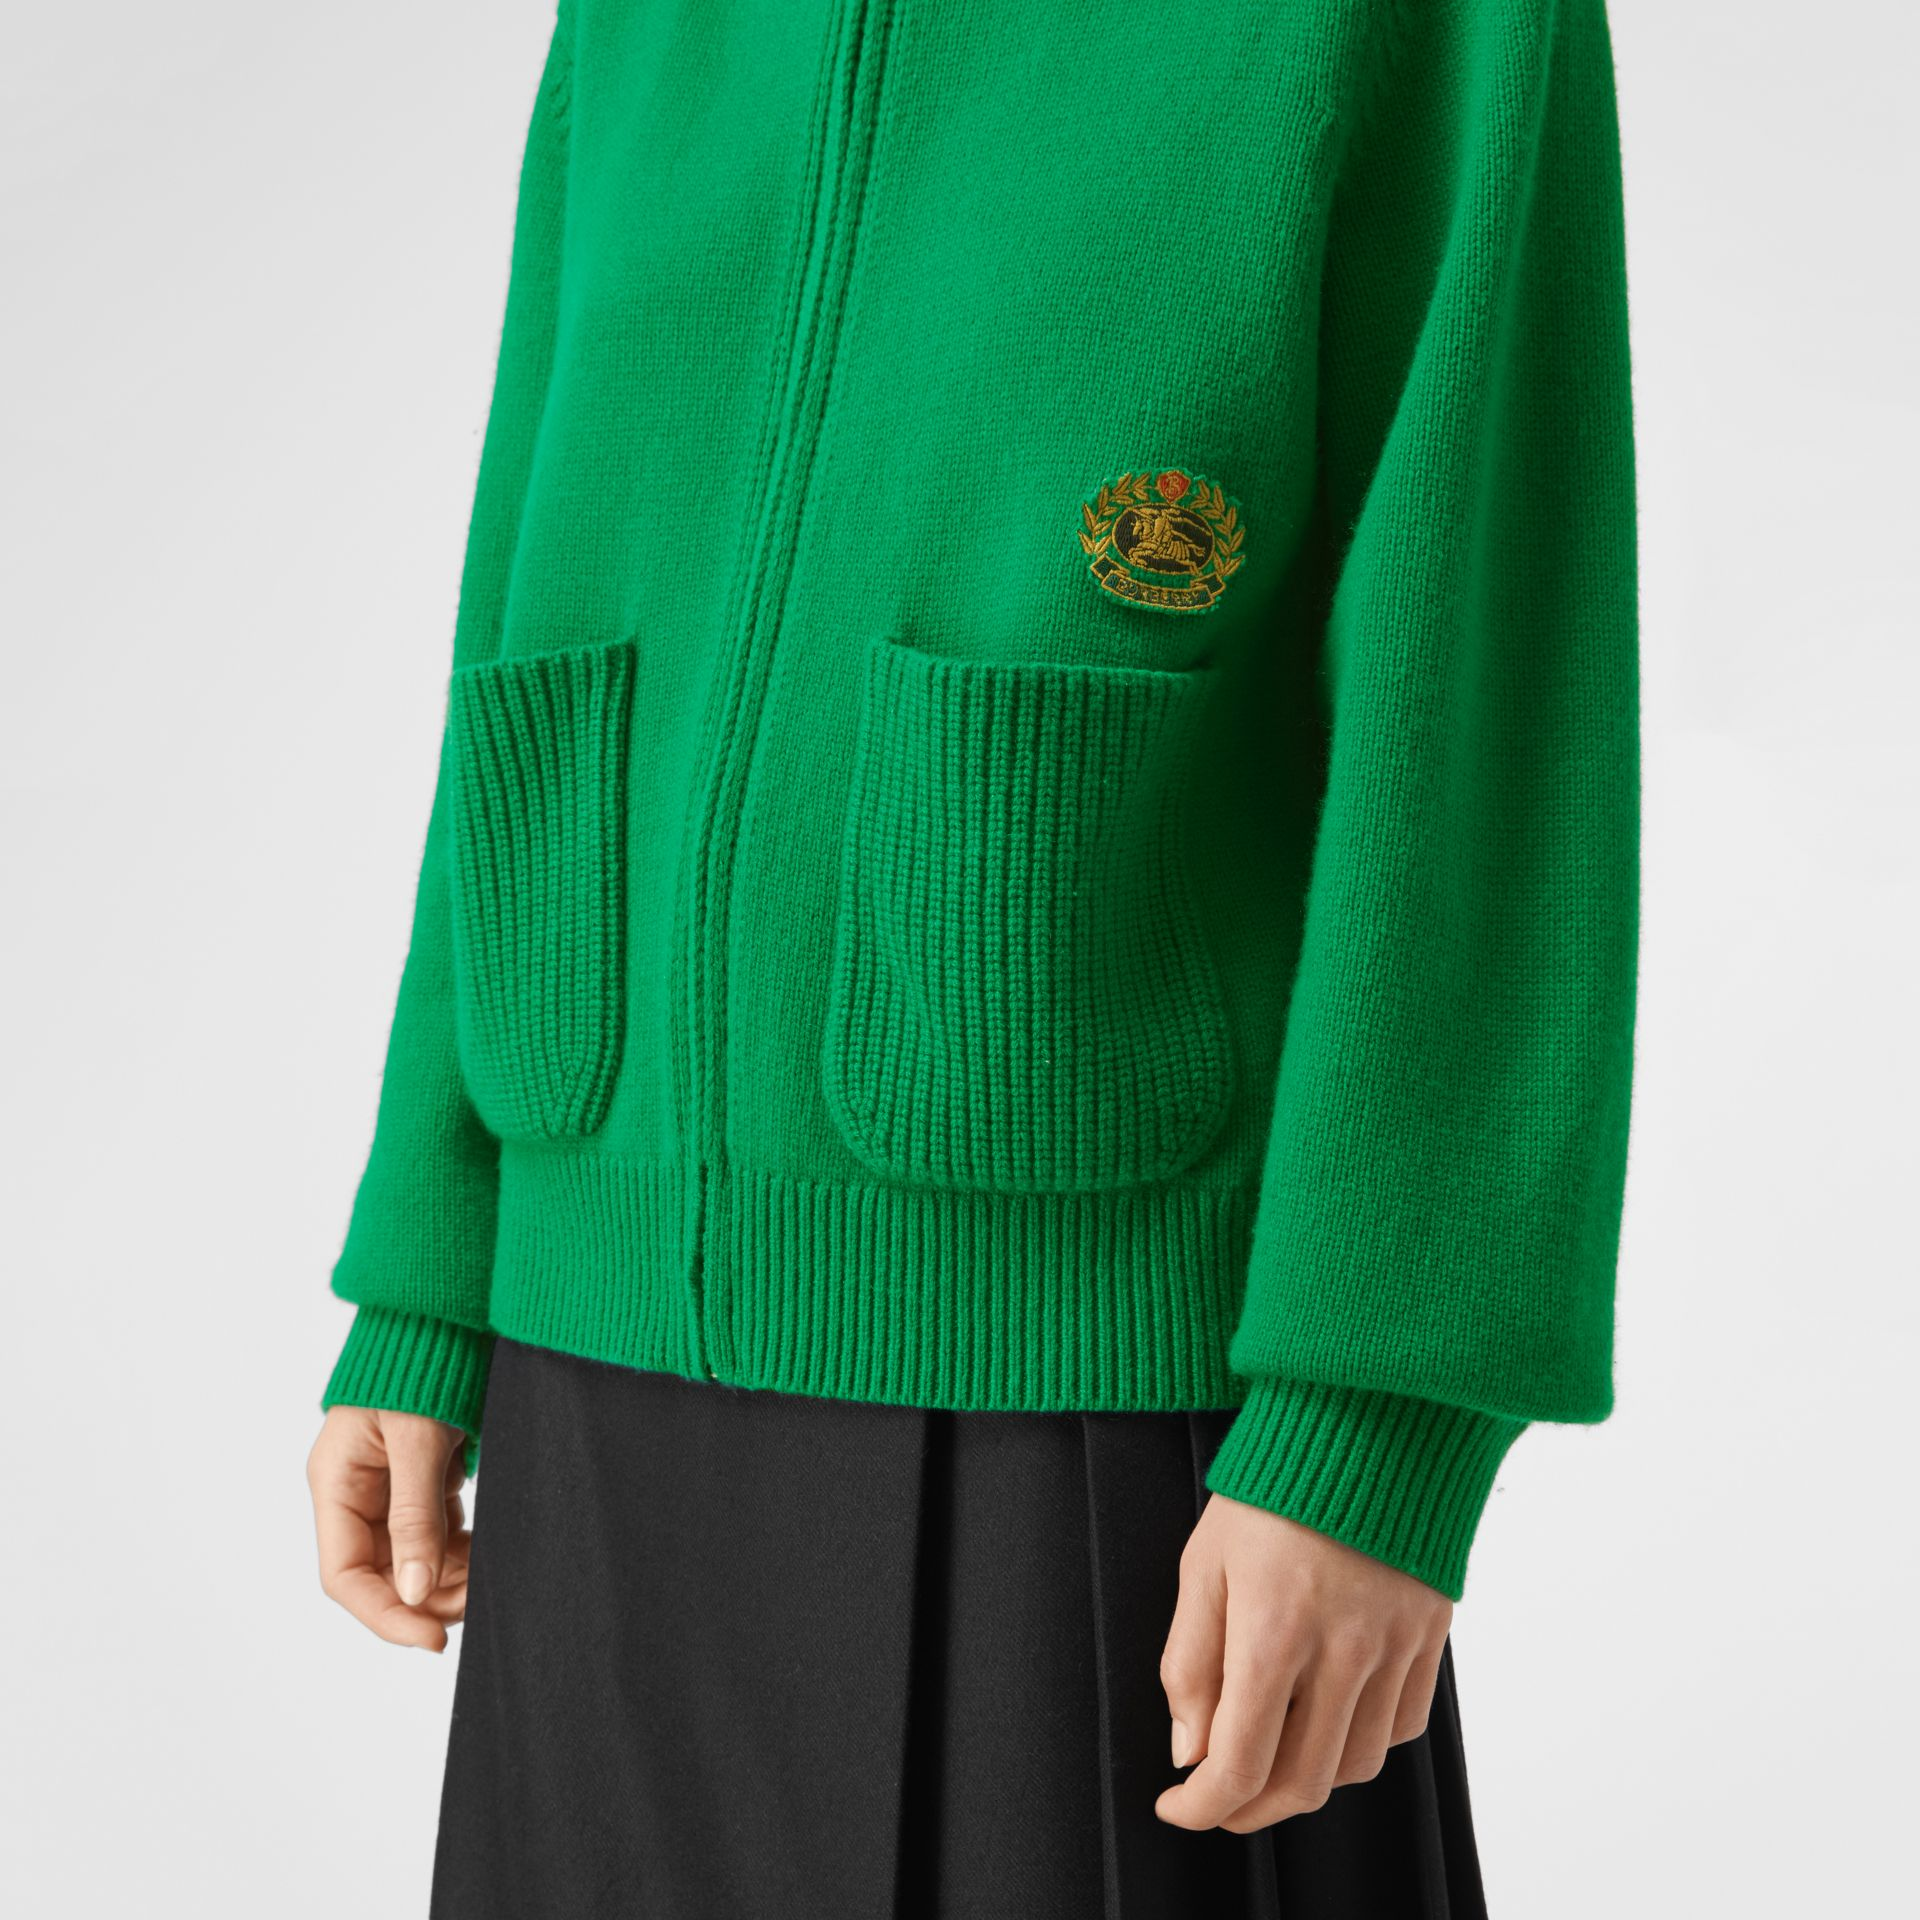 Embroidered Crest Cashmere Hooded Top in Vibrant Green - Women | Burberry Australia - gallery image 1